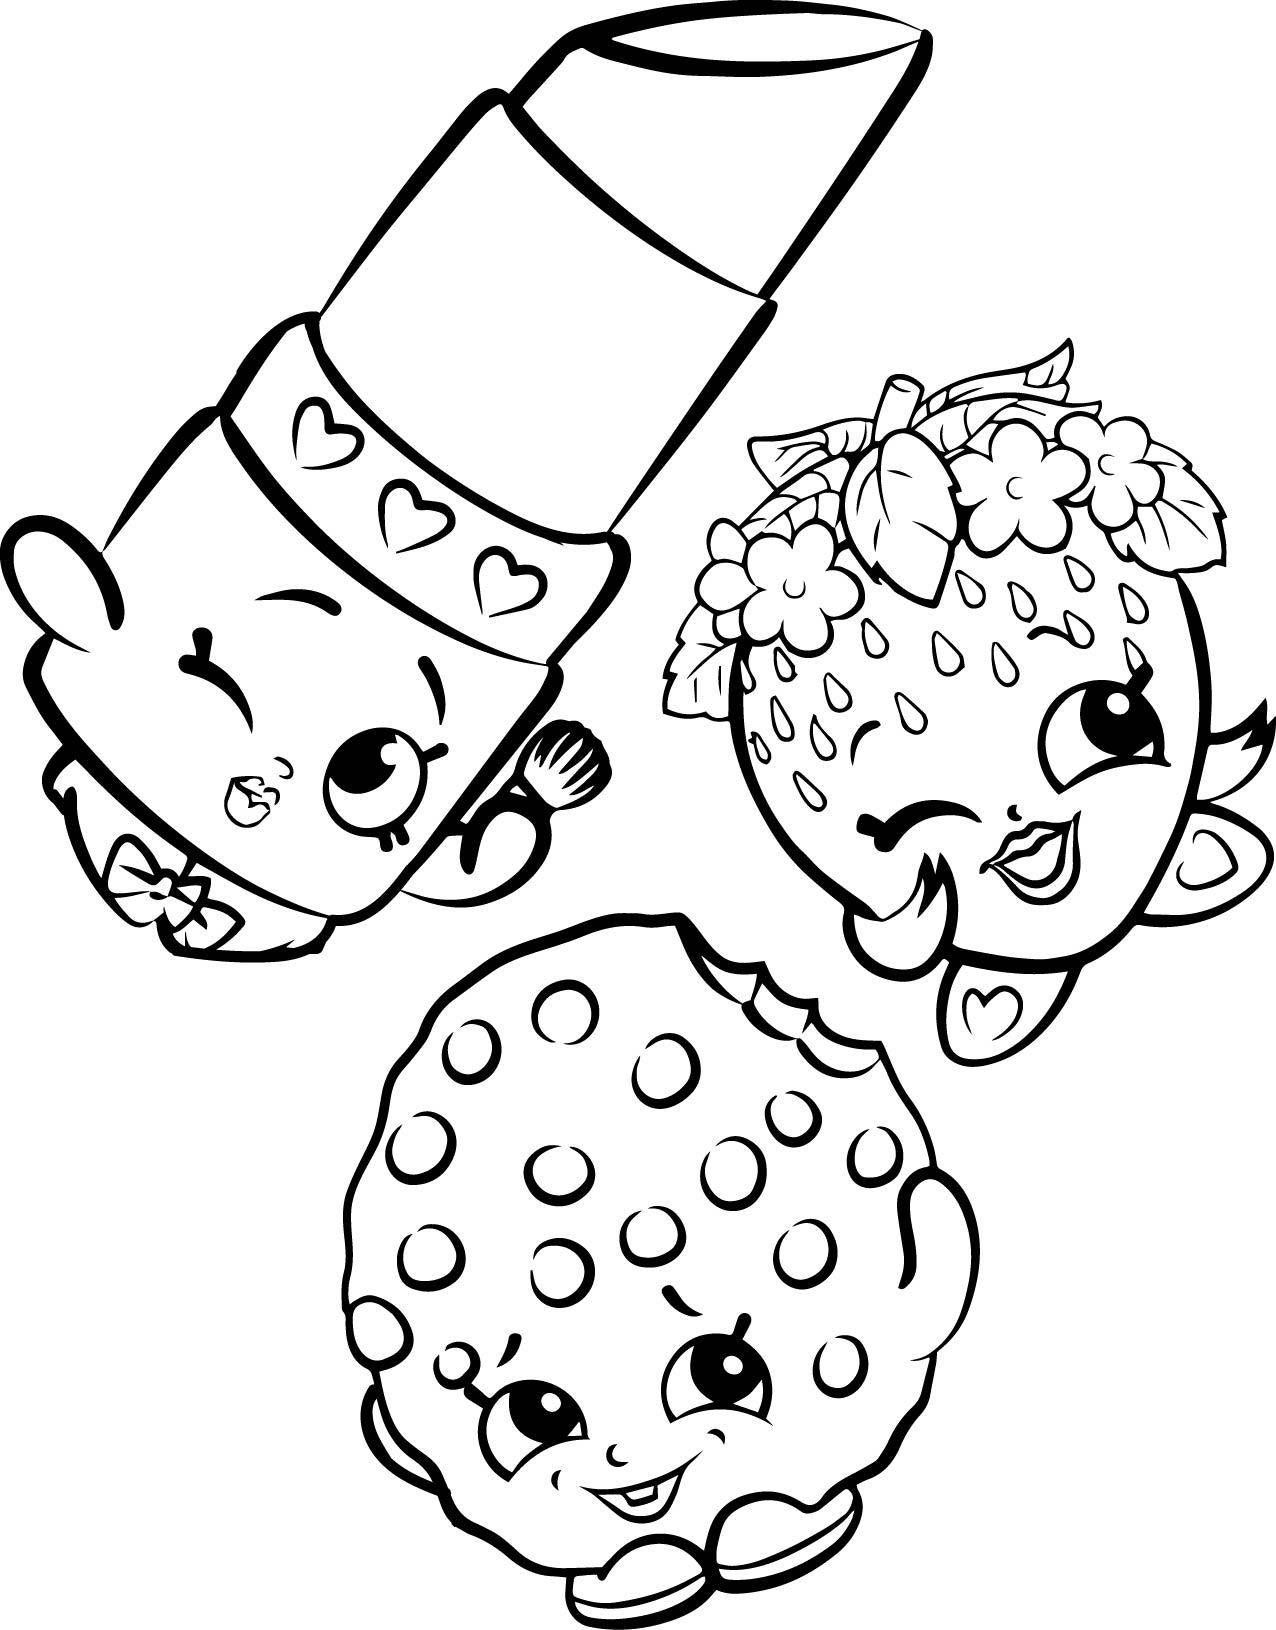 Shopkins color sheets - Shopkins Coloring Pages Best Coloring Pages For Kids